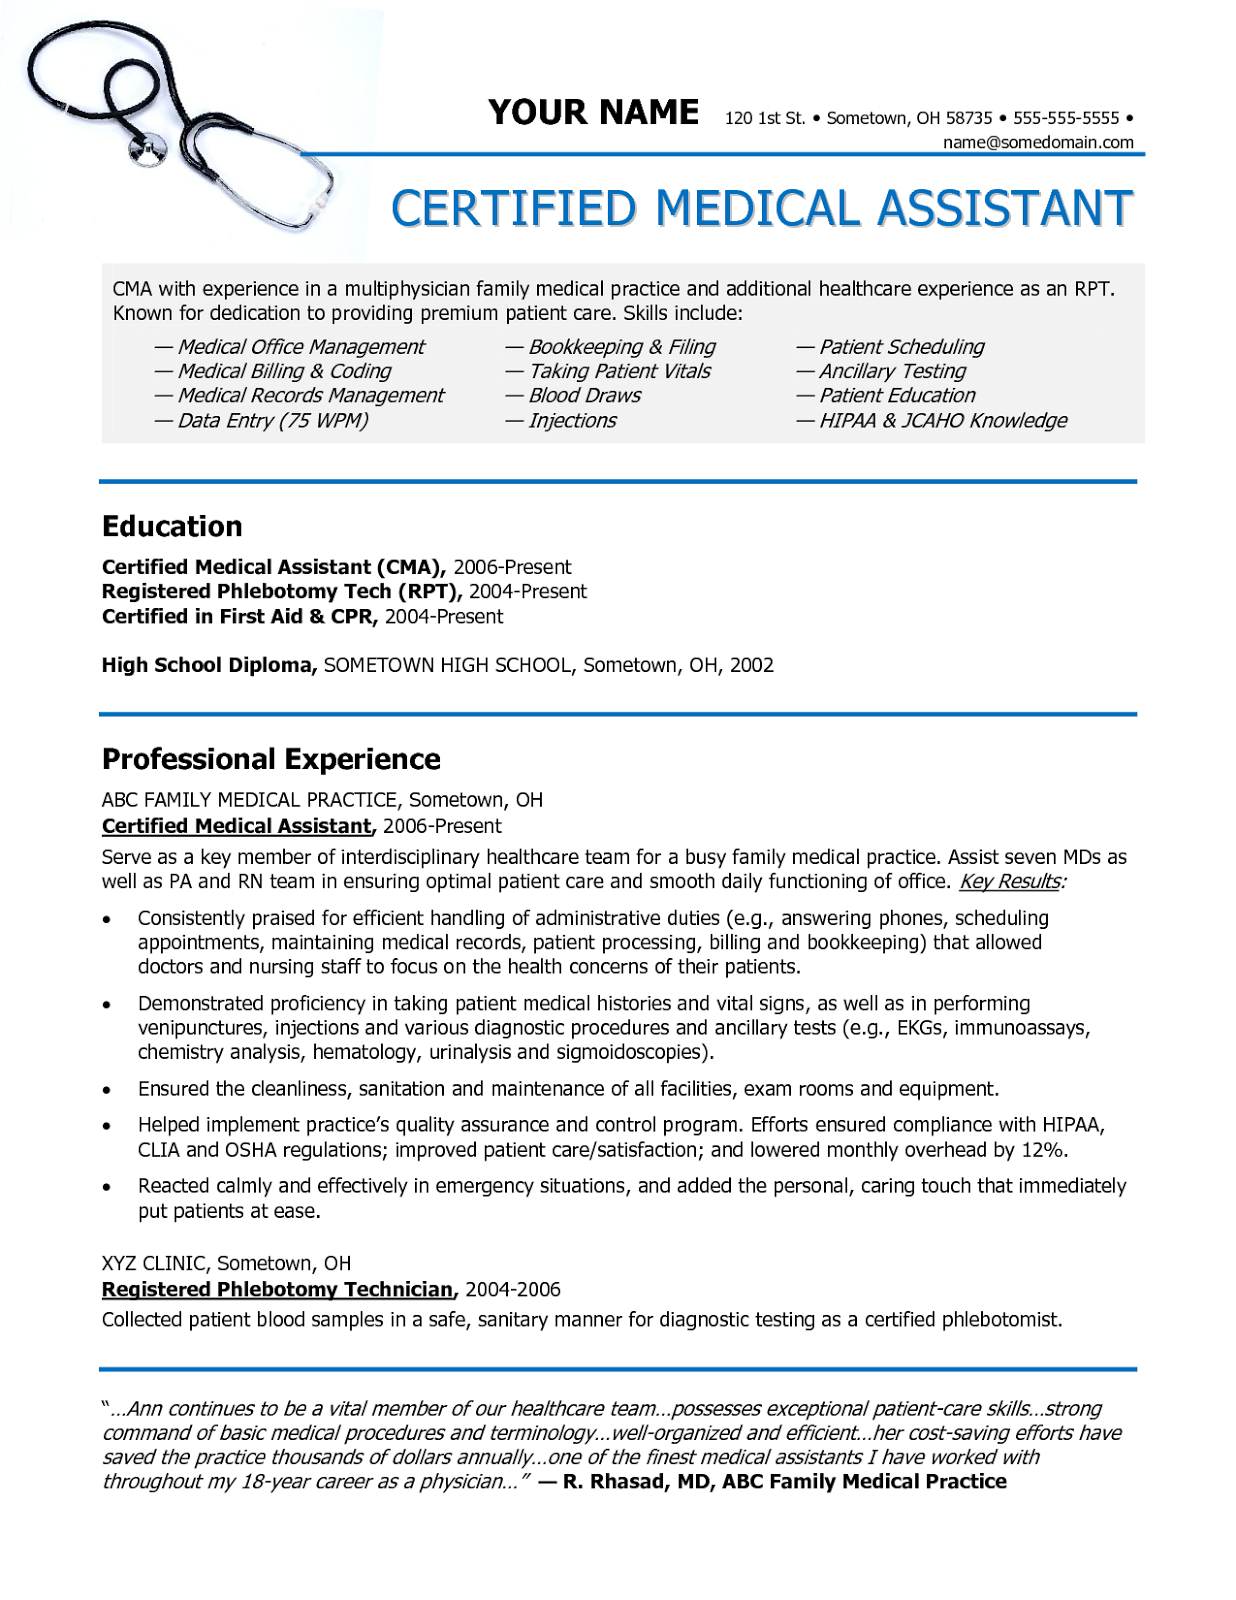 Are References Required On A Resume Sample Of A Medical Assistant Resume Sample Resumes